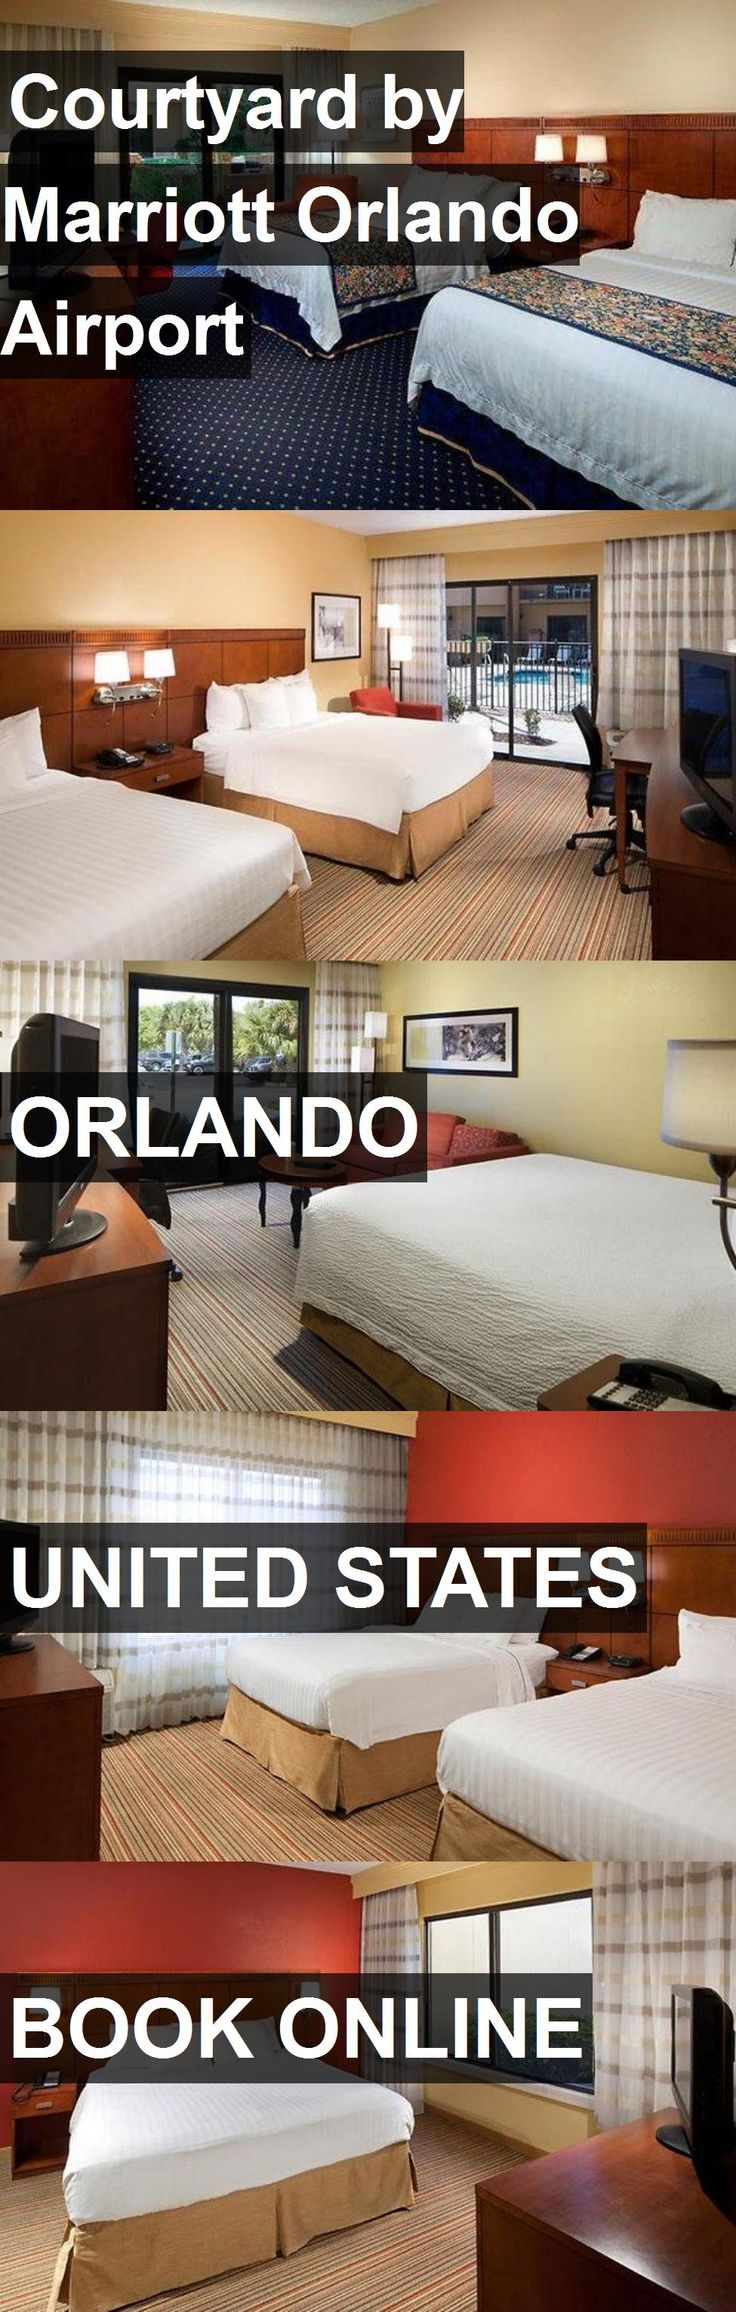 Hotel Courtyard by Marriott Orlando Airport in Orlando, United States. For more information, photos, reviews and best prices please follow the link. #UnitedStates #Orlando #travel #vacation #hotel